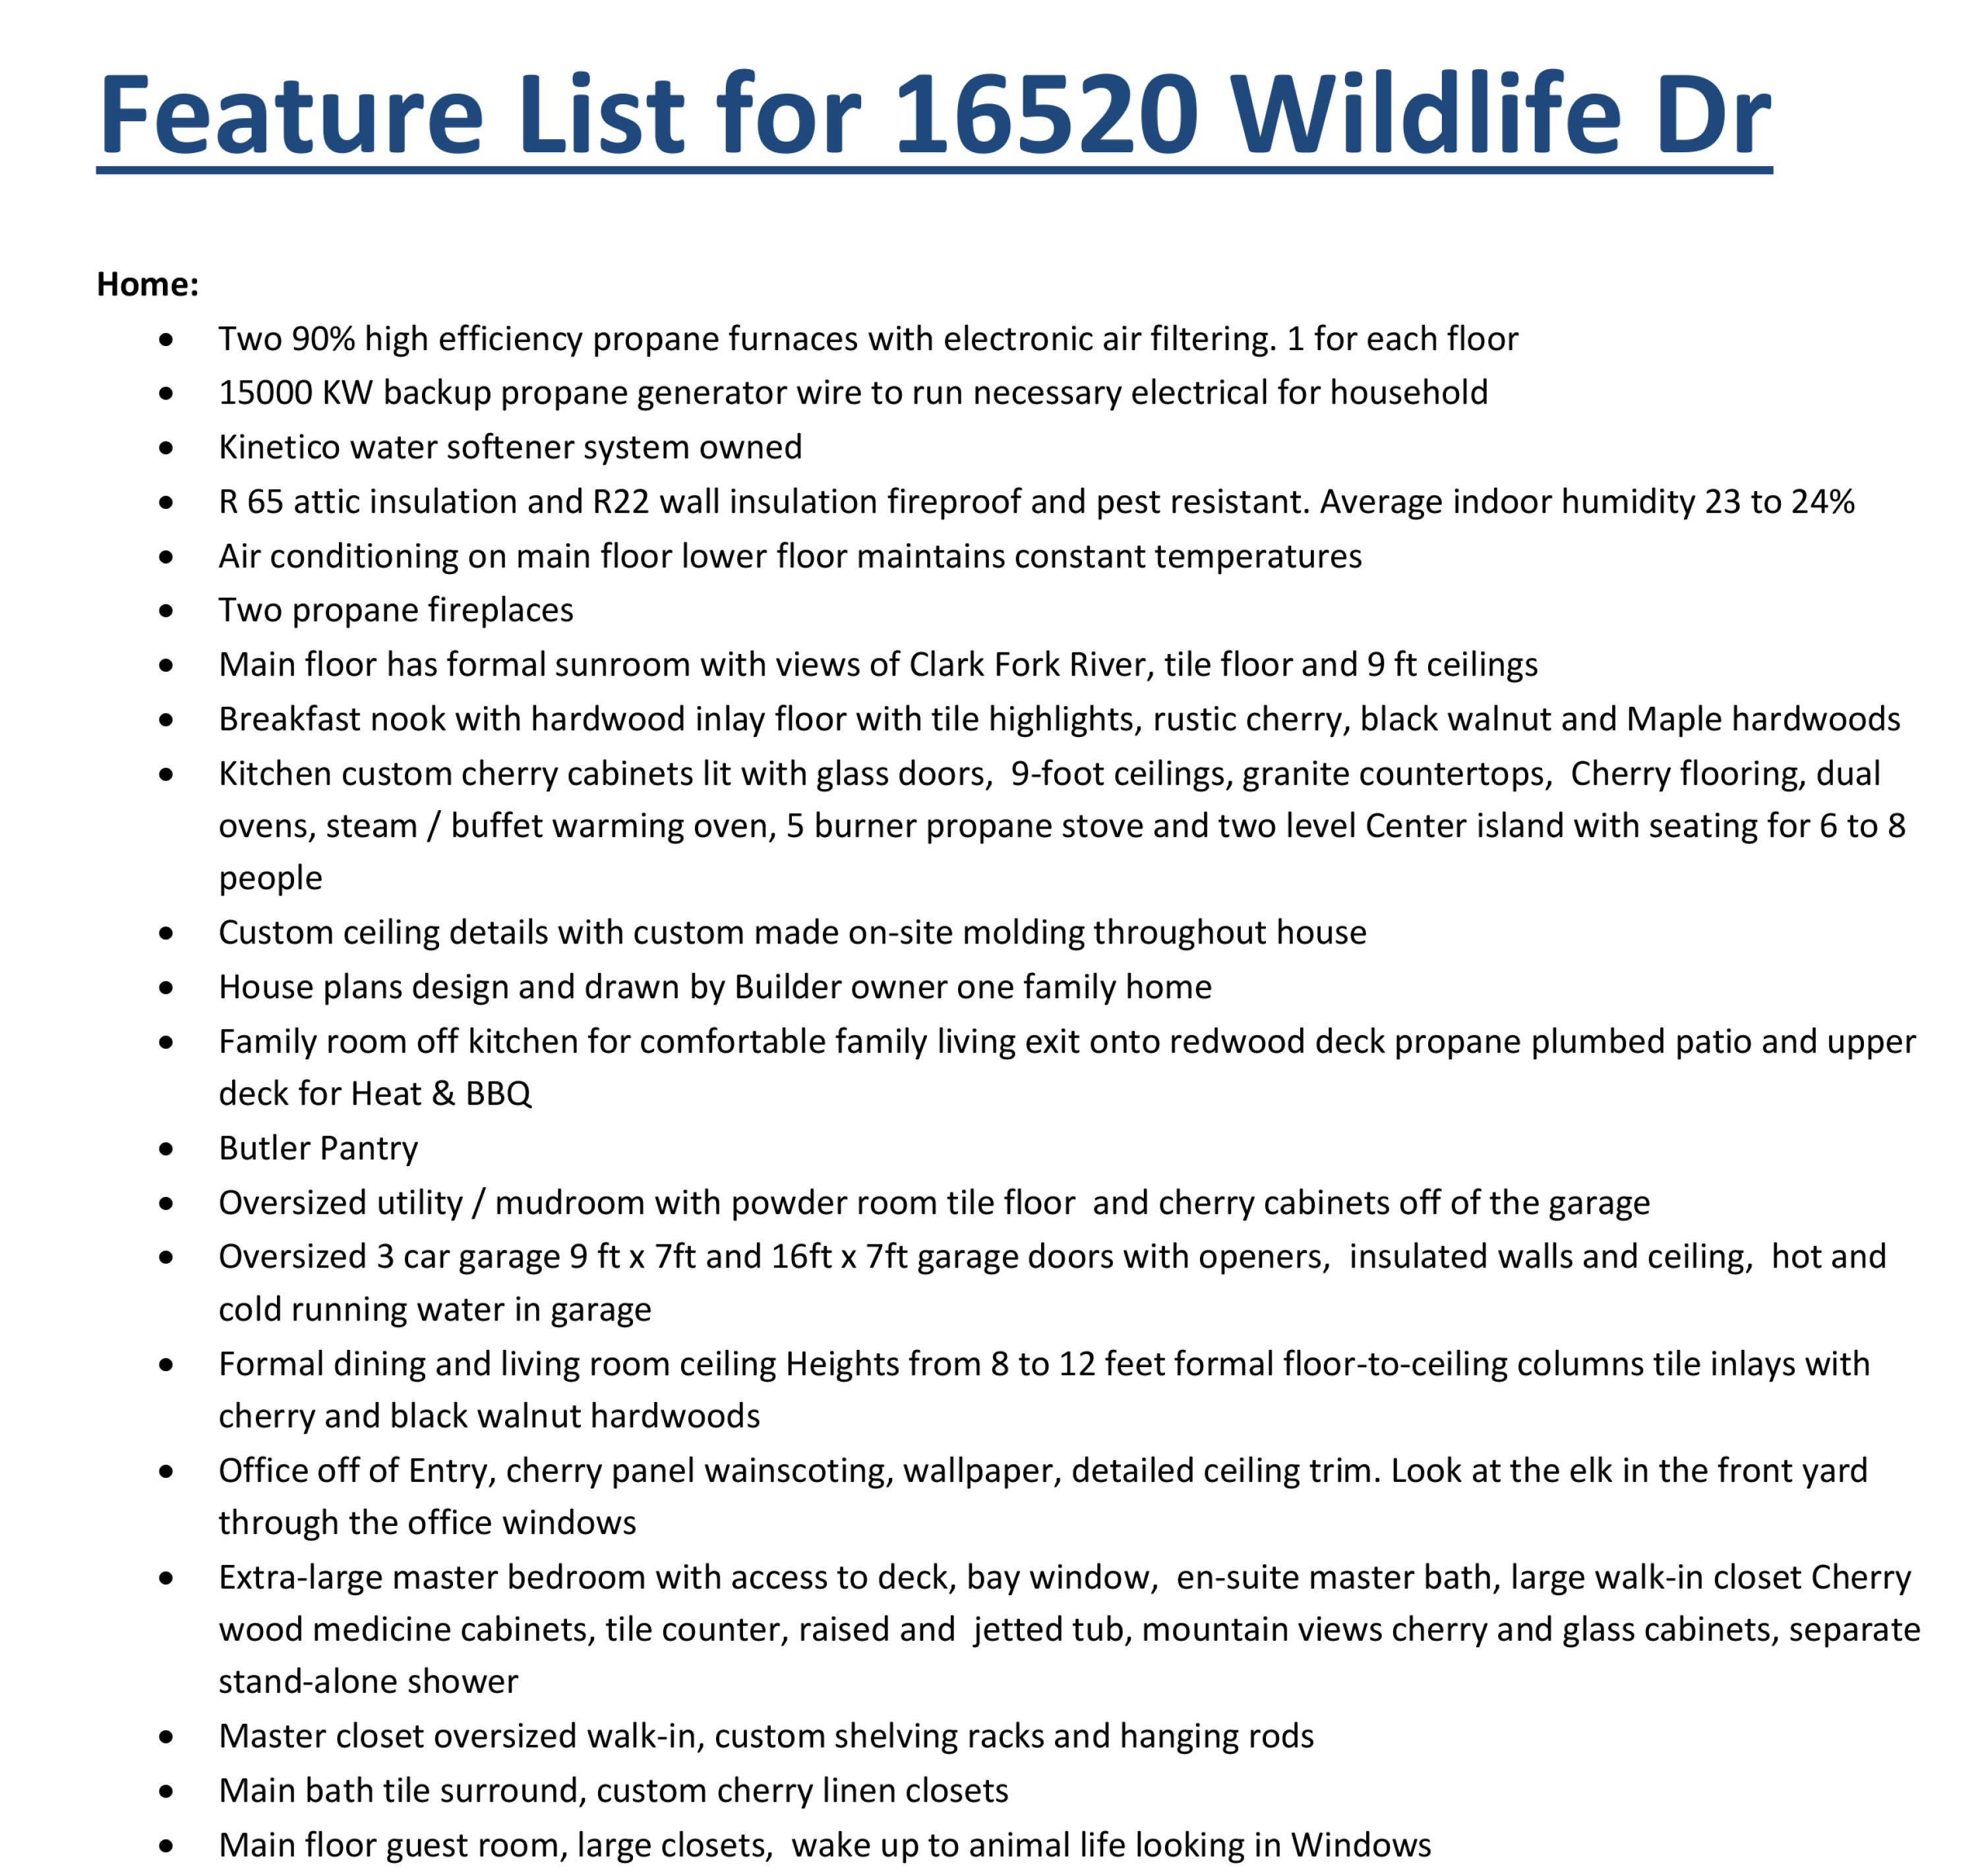 Feature List for 16520 Wildlife Dr. pg2